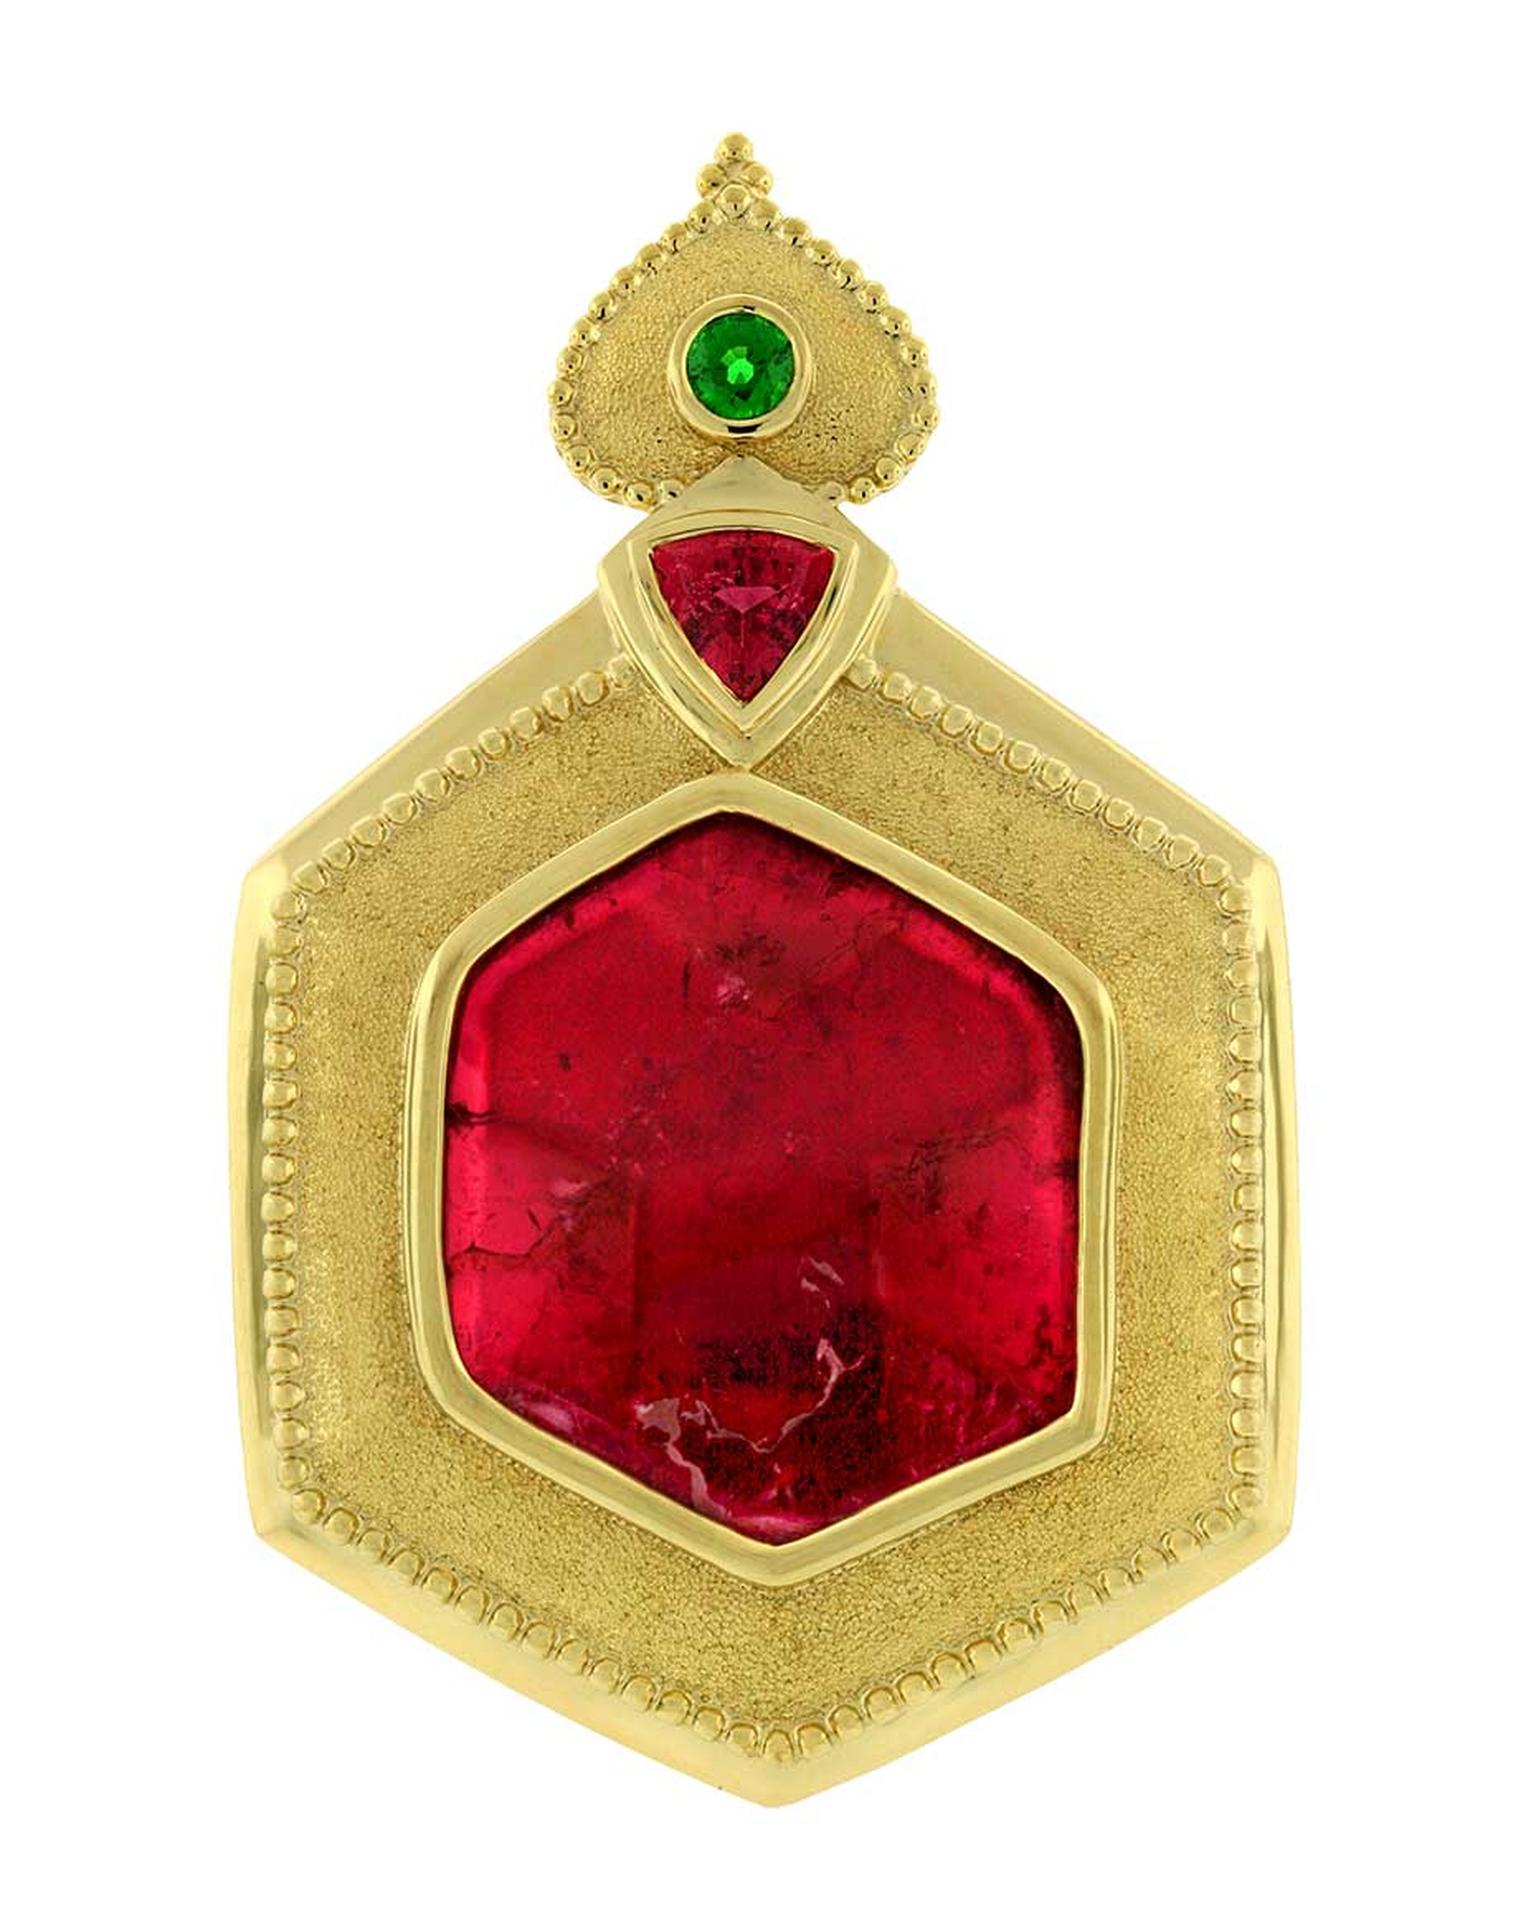 One-of-a-kind Paula Crevoshay pendant in gold, set with a 35.67ct tourmaline, a 1.95ct tourmaline and a tsavorite.